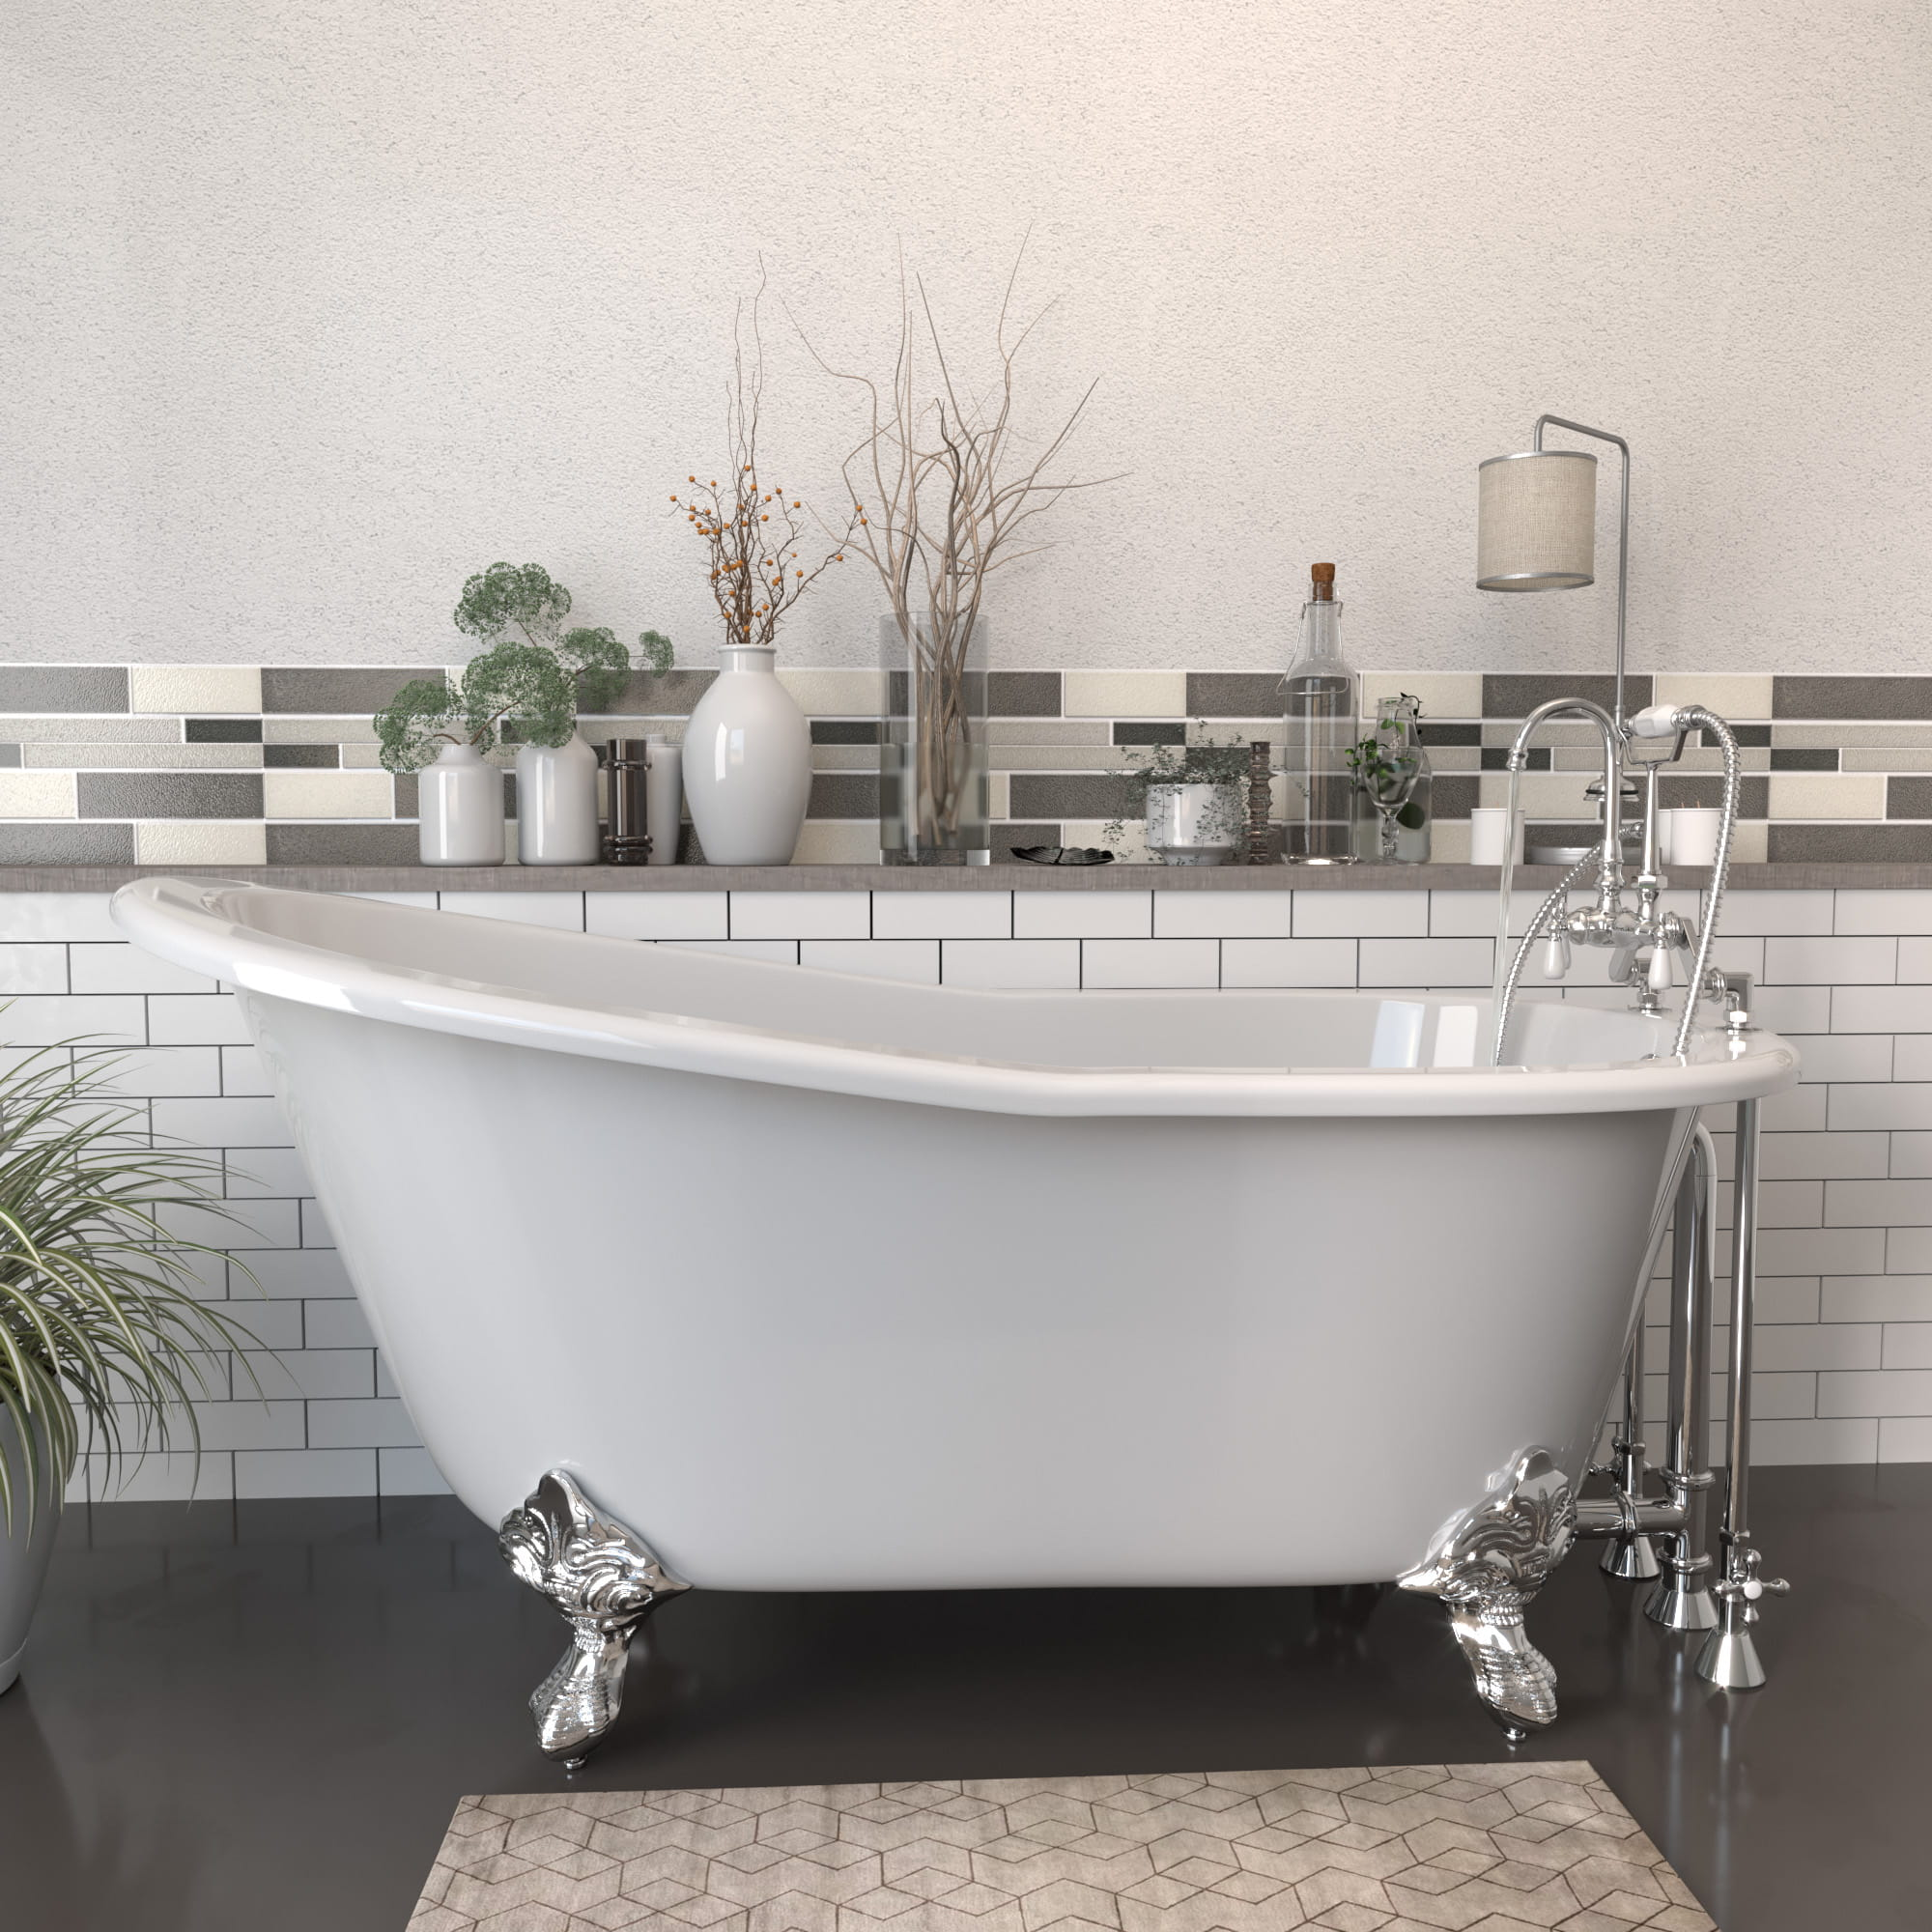 """Cast Iron Slipper Clawfoot Tub 61"""" X 30"""" with 7"""" Deck Mount Faucet Drillings and English Telephone Style Faucet Complete Polished Chrome Plumbing Package"""